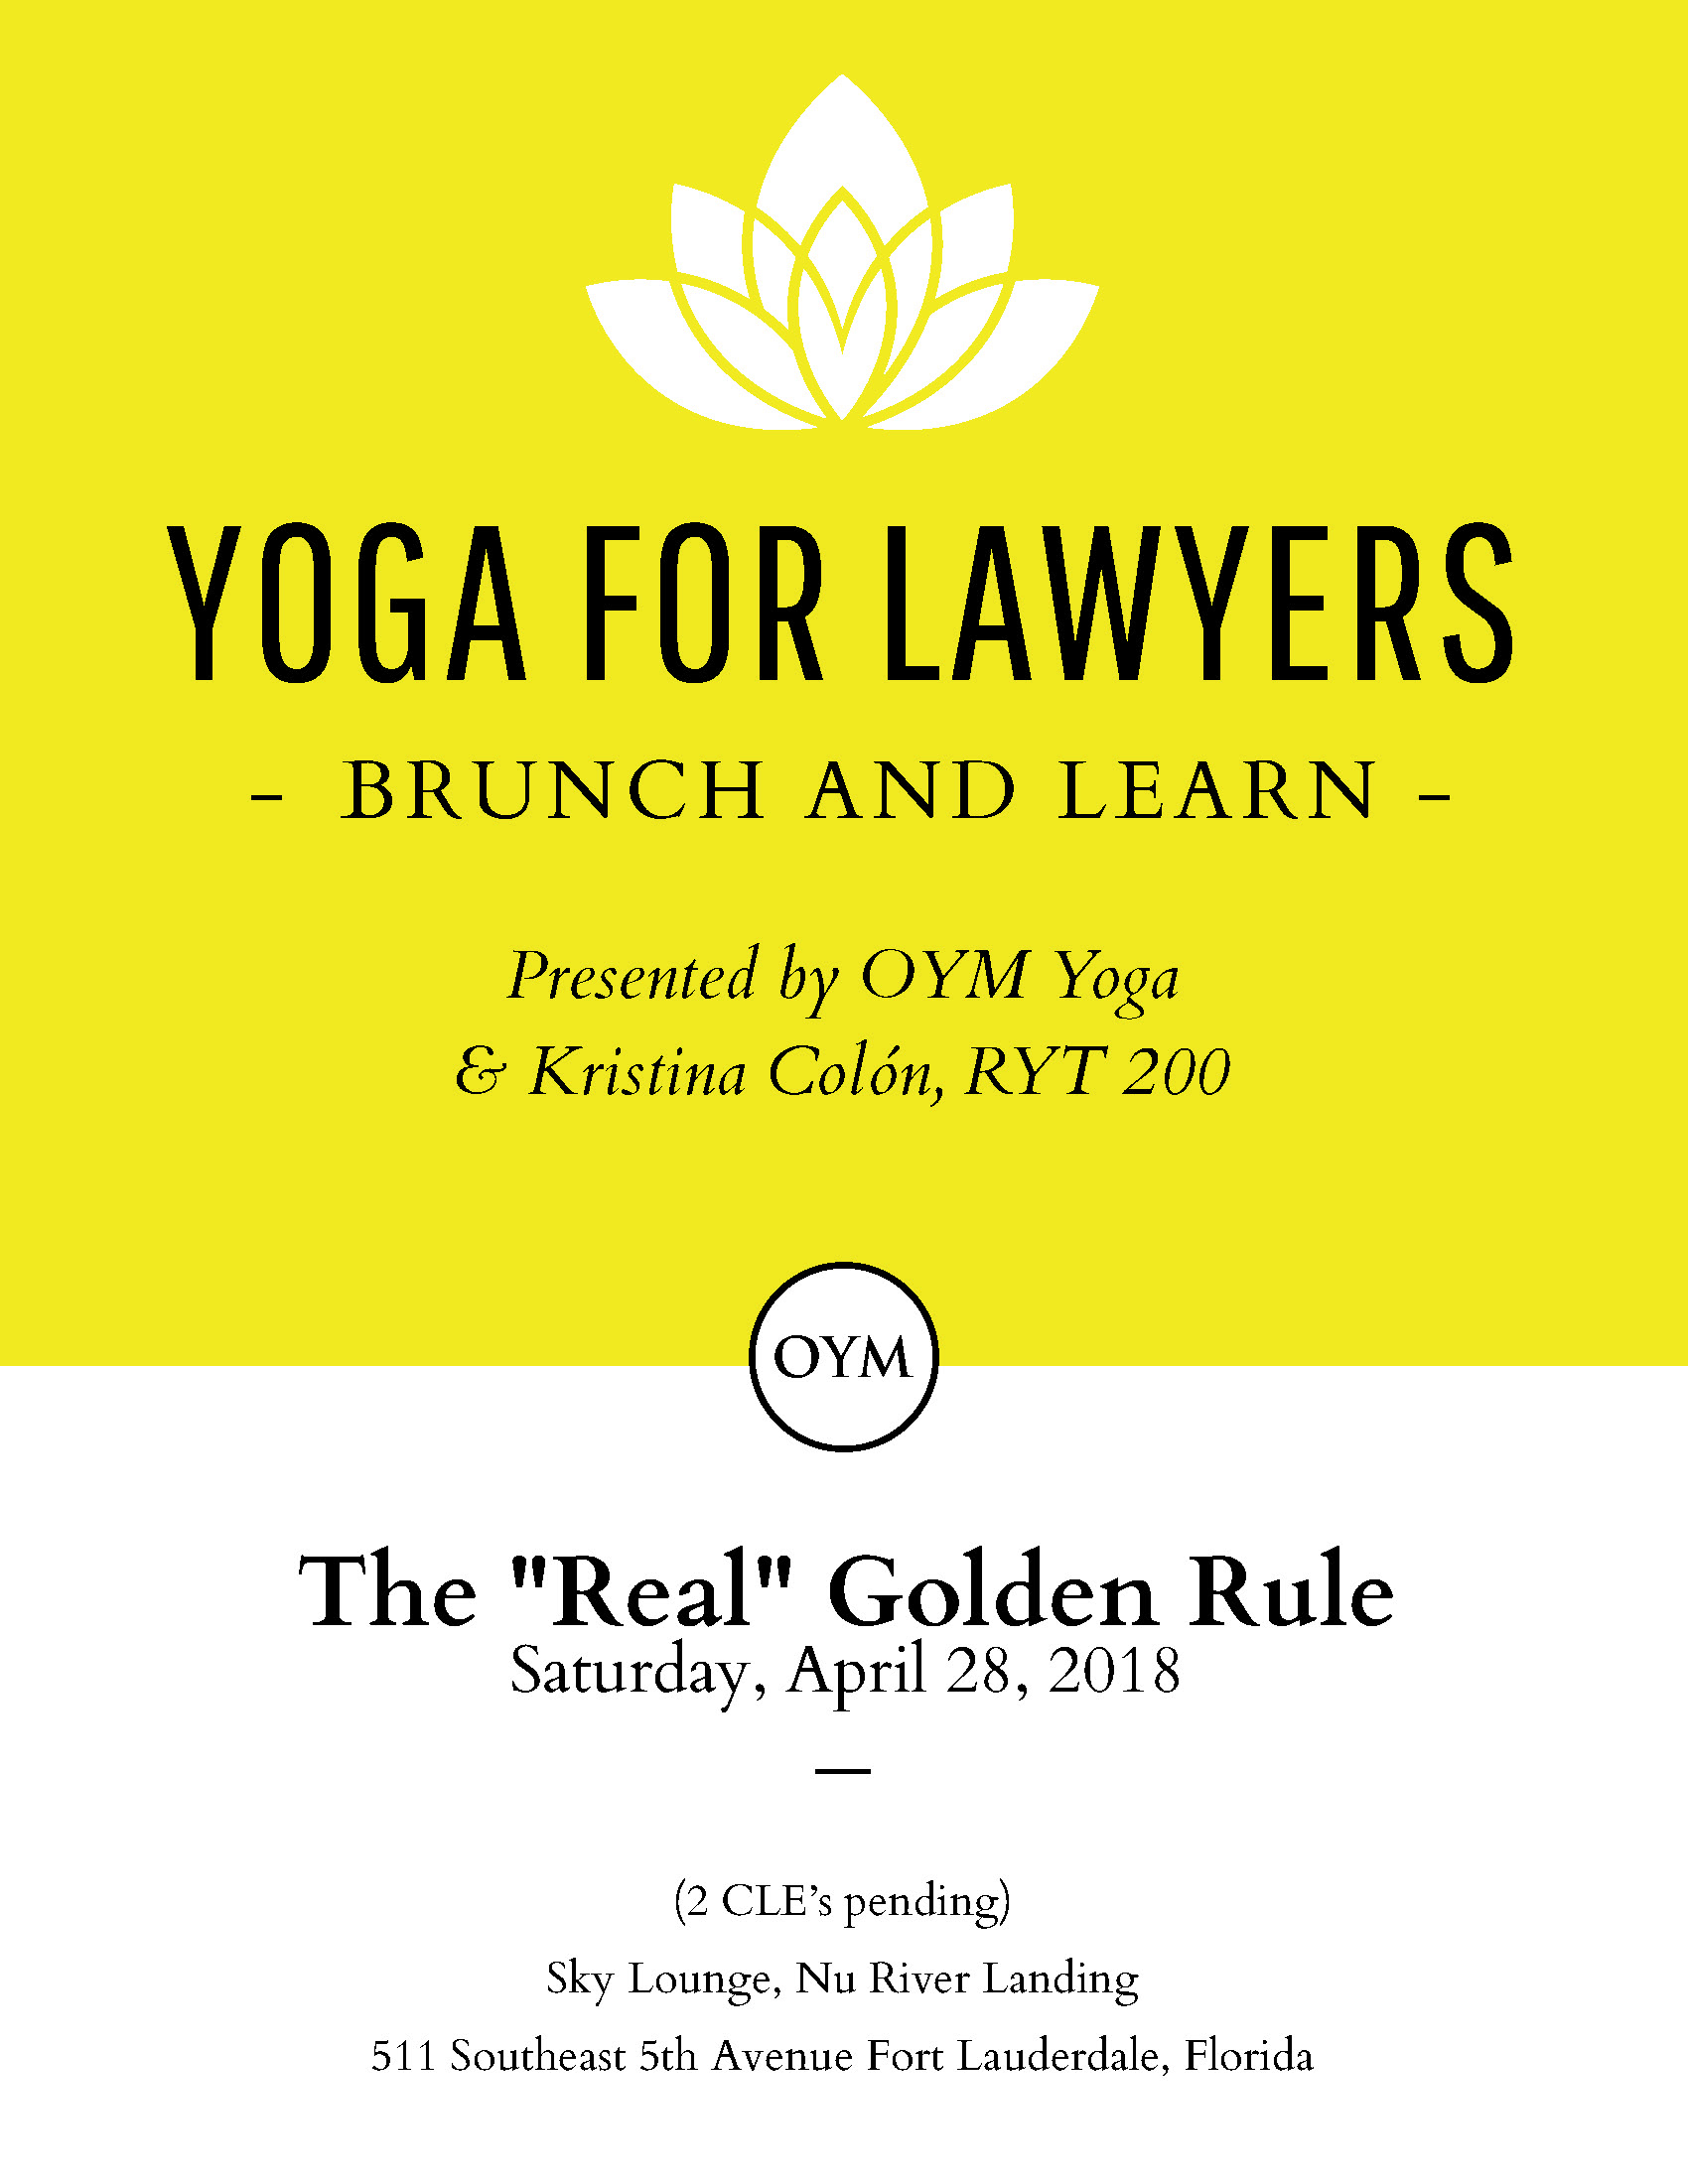 Yoga For Lawyers Brunch and Learn